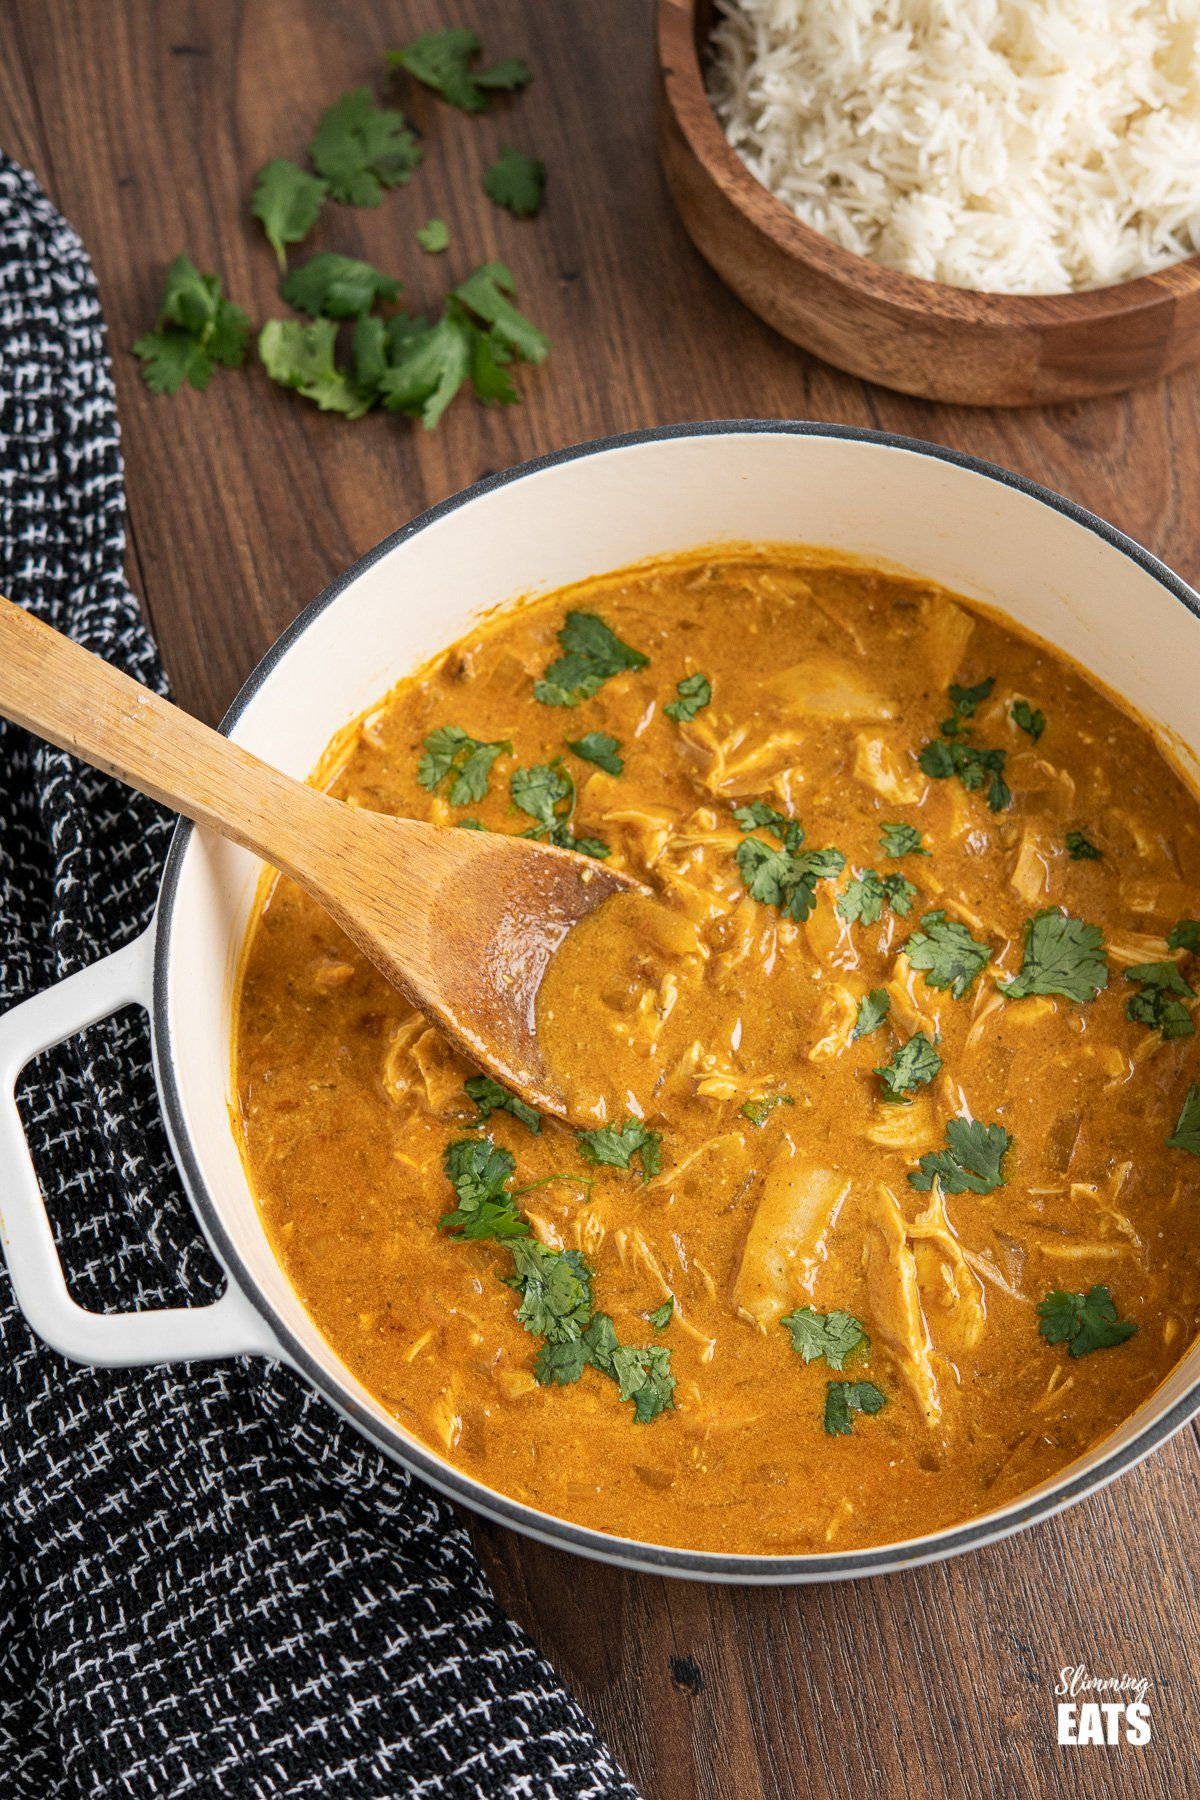 Quick Mild Chicken Curry From Www Slimmingeats Com A Delicately Flavoured Curry U In 2020 Slimming Eats King Pro Pressure Cooker Recipes Slow Cooker Slimming World